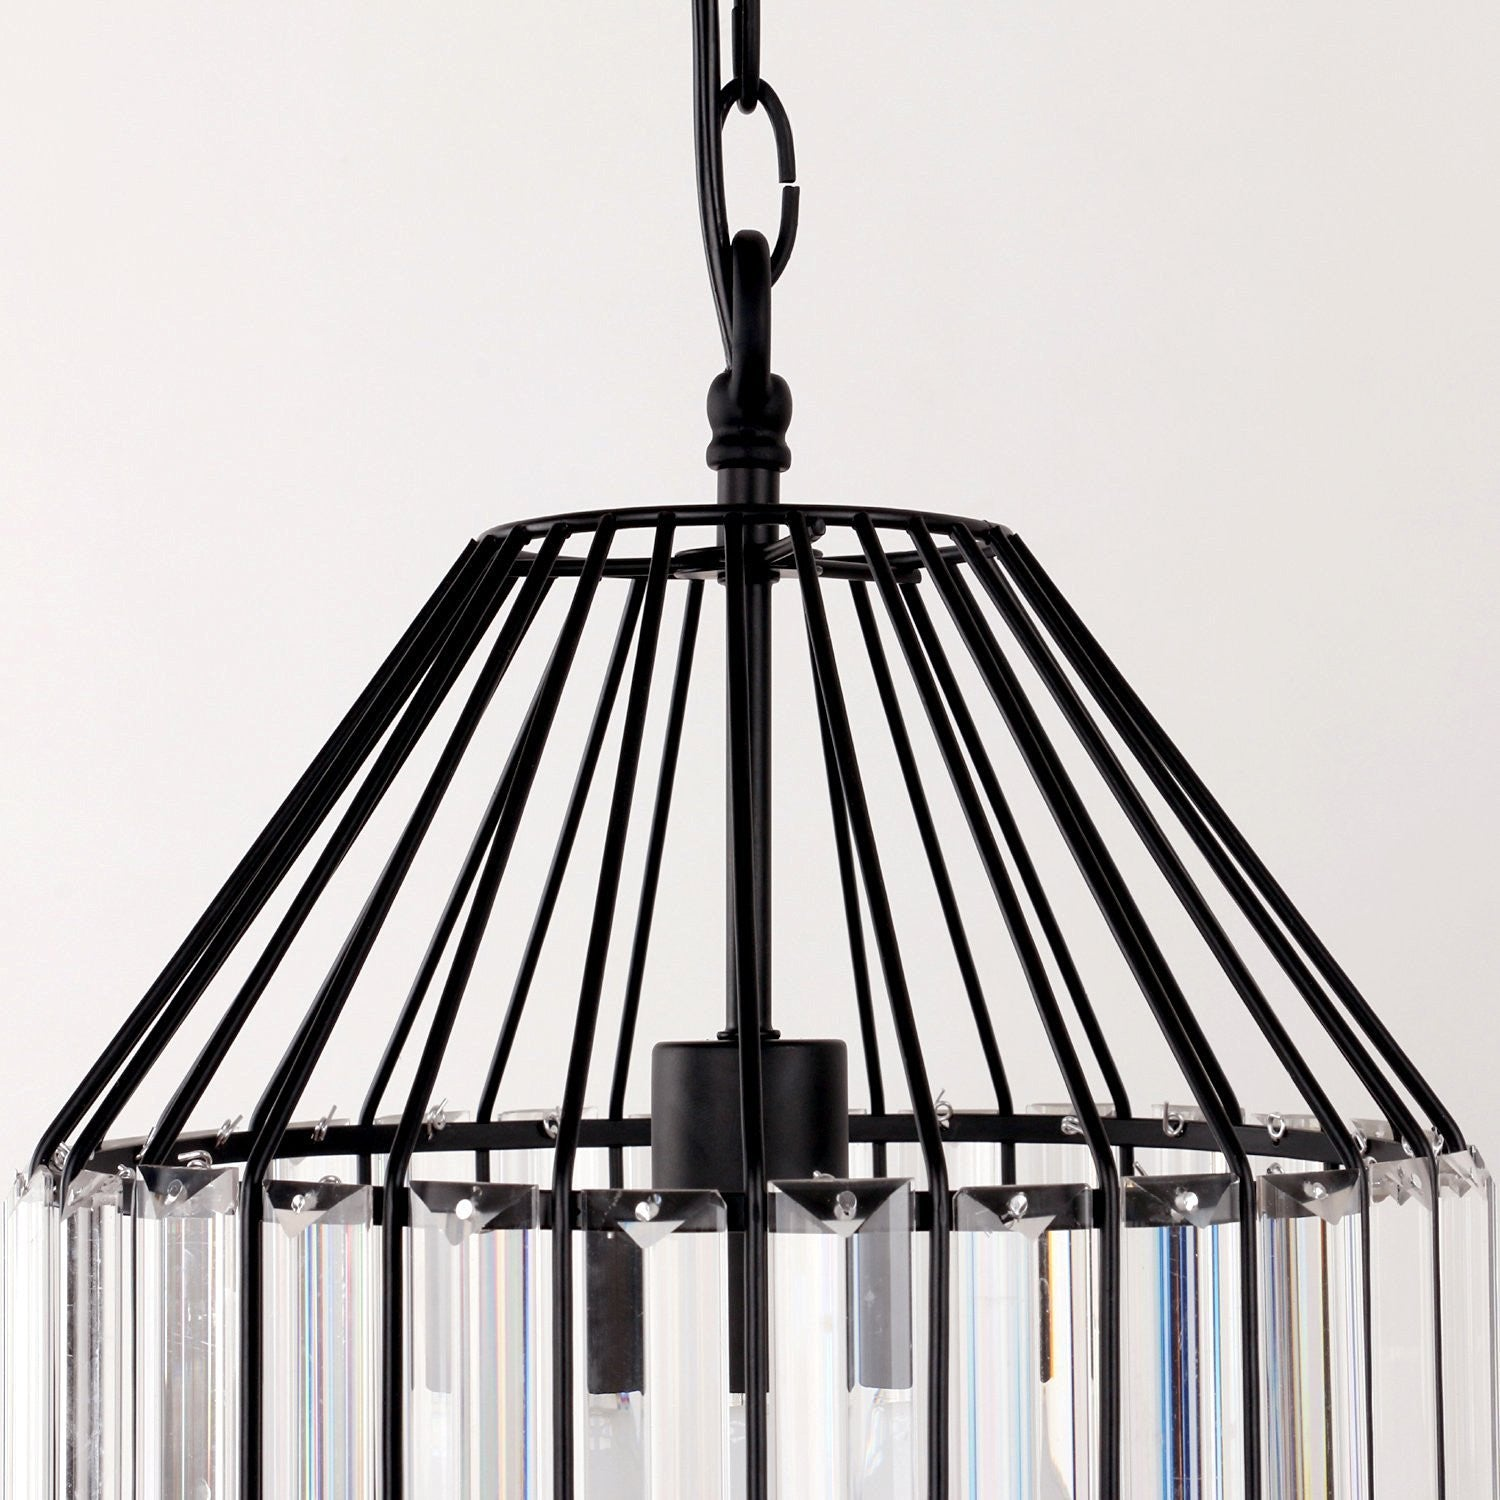 metal buy ways lifeix lights tube restoring design chandelier products ancient industrial at pendant